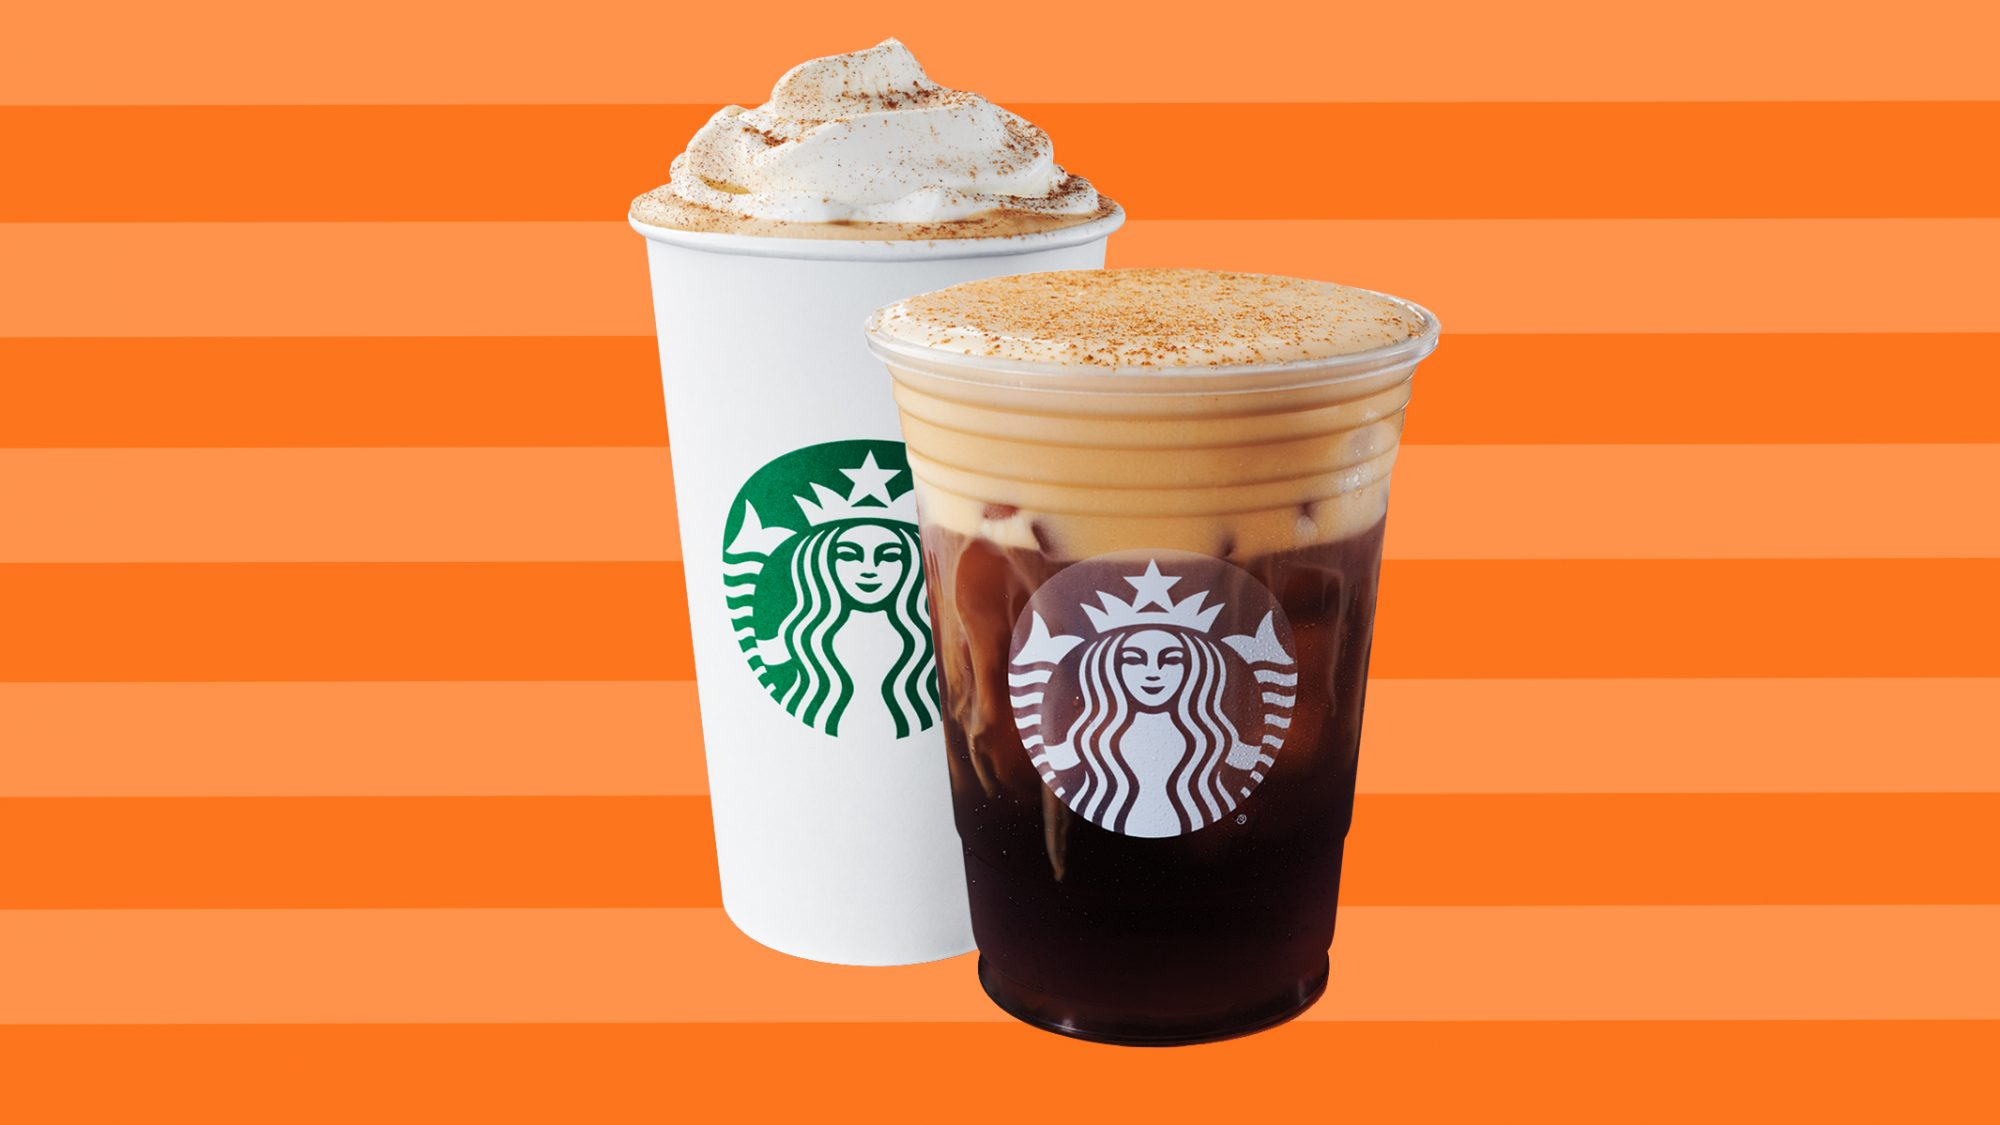 Starbucks Just Announced Its First New Pumpkin Coffee Drink Since The PSL—and We've Never Been So Excited